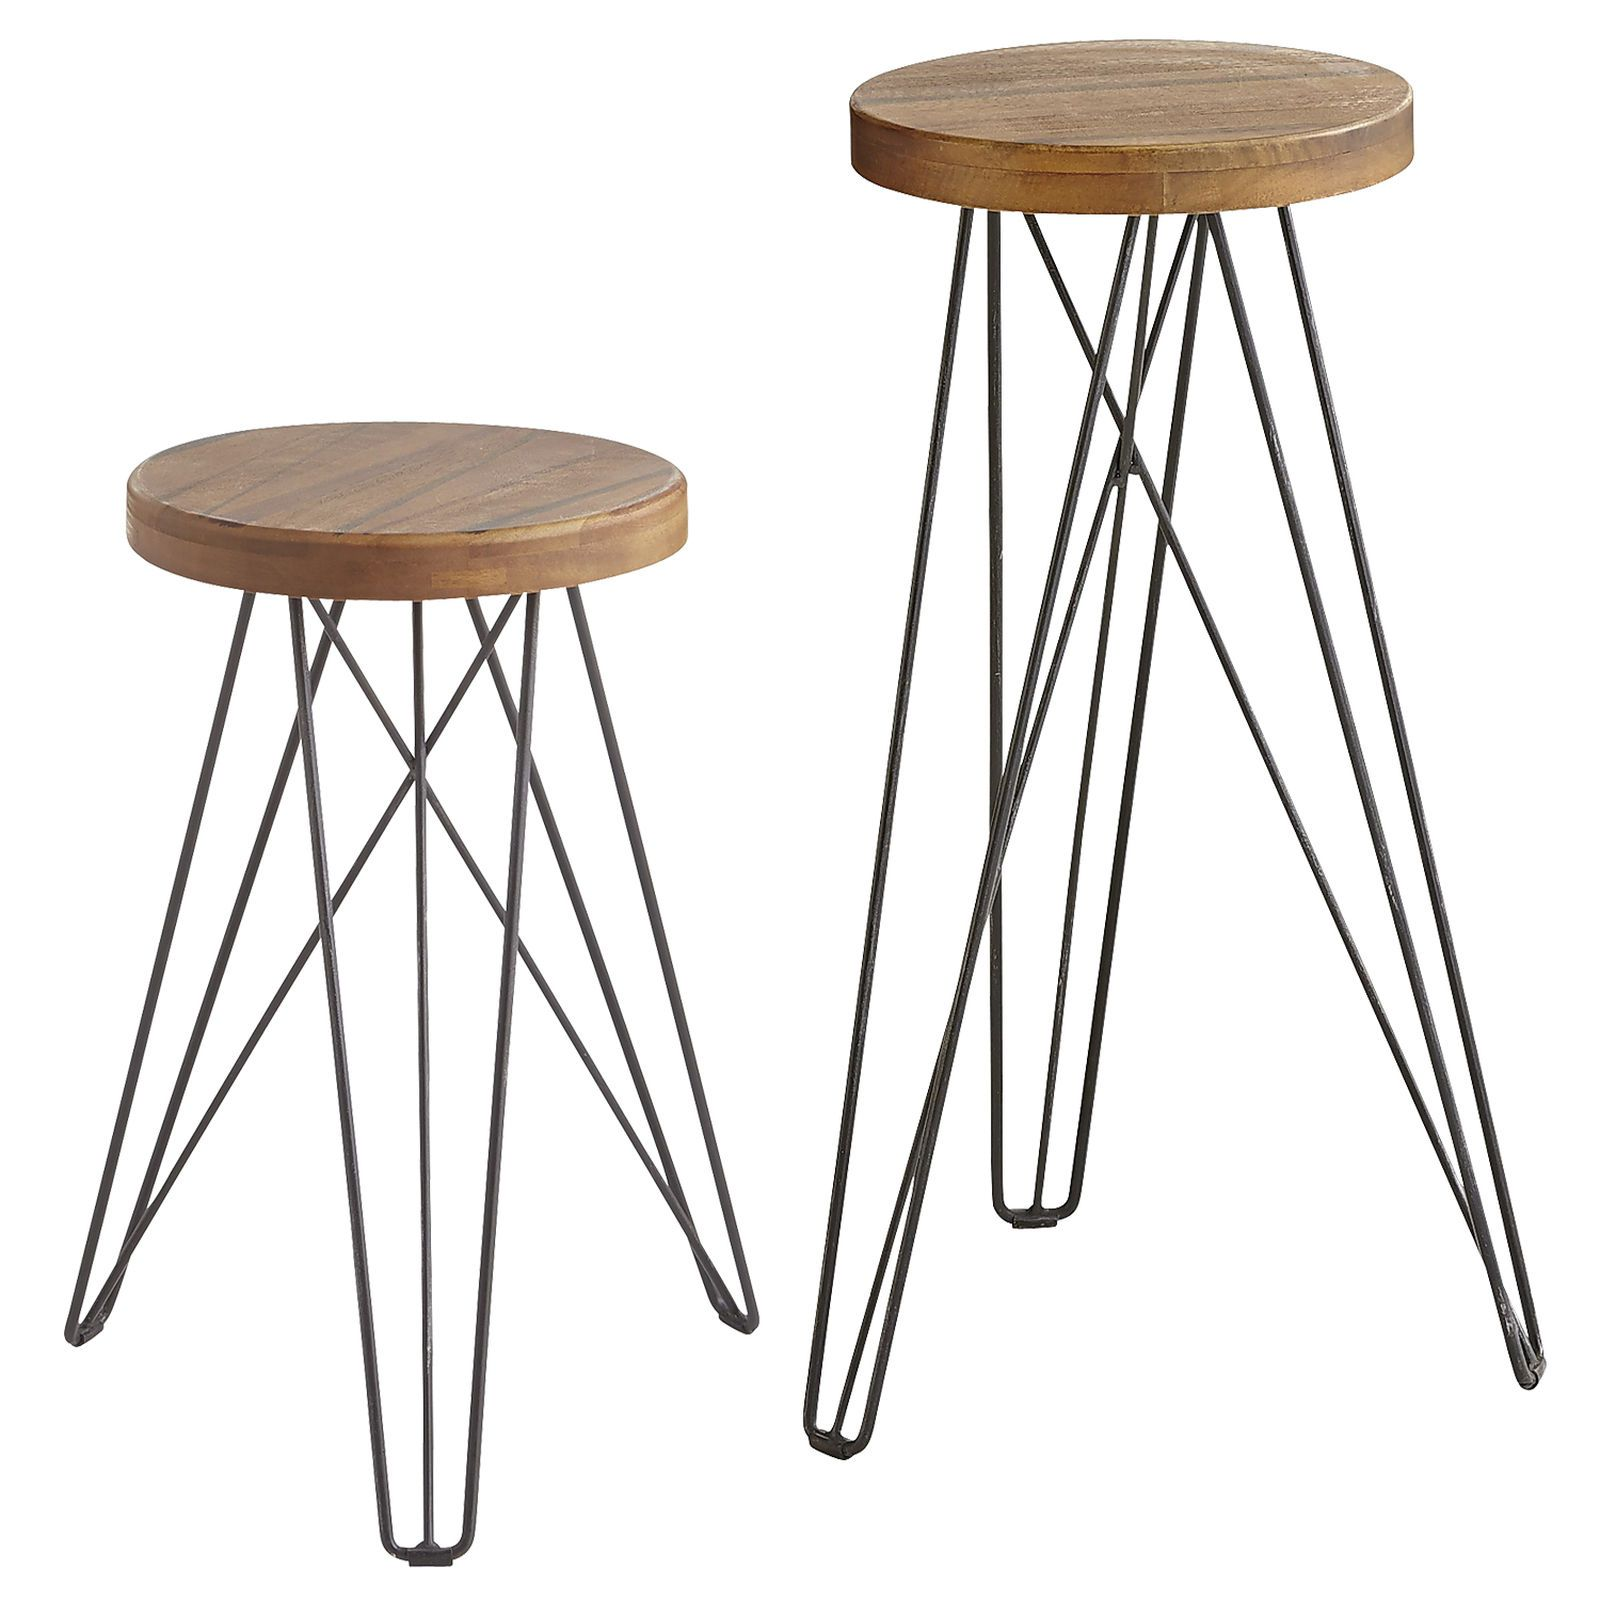 Industrial Design Bar Stools Our Modern Industrial Erie Stoolswith Their Hairpin Legs